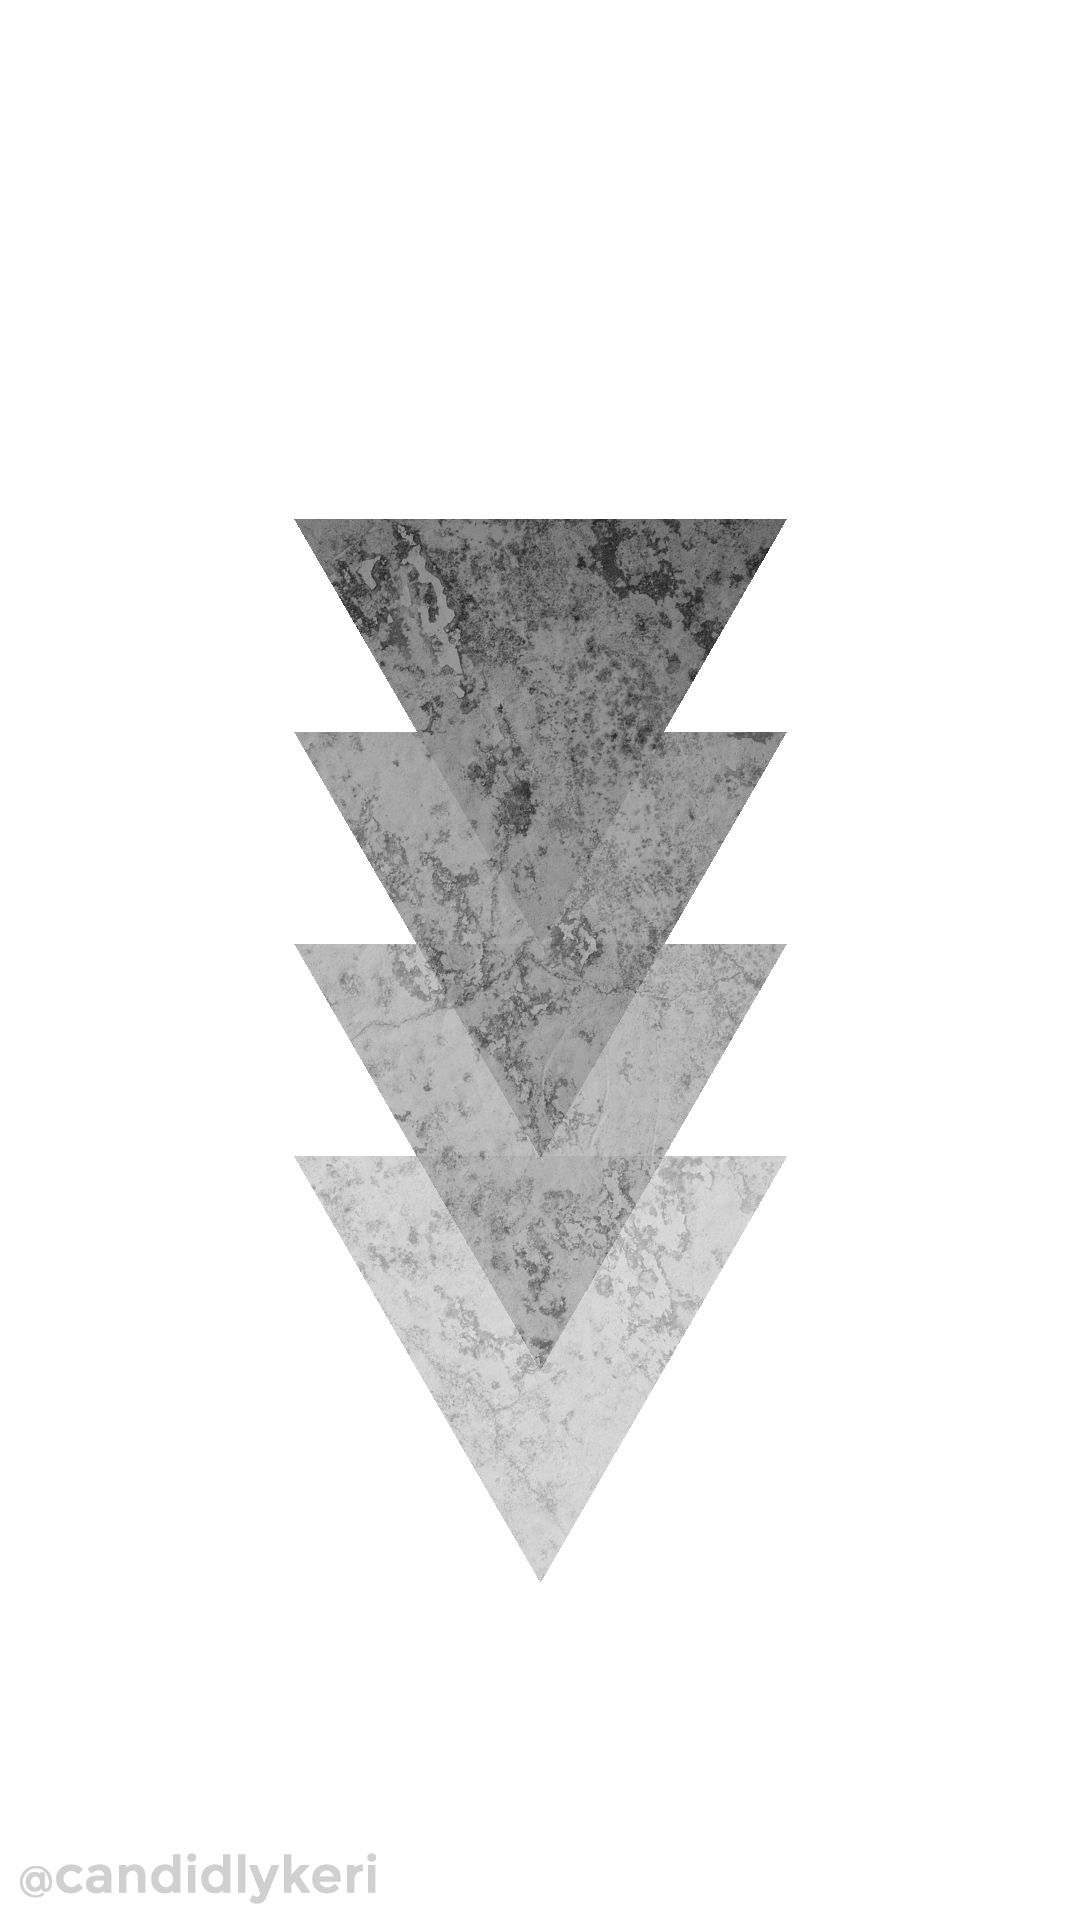 Triangle Texture Concrete Geometric Shape Gray Wallpaper You Can Download For Free On The Blog For A Grey Wallpaper Grey Wallpaper Phone Grey Wallpaper Iphone